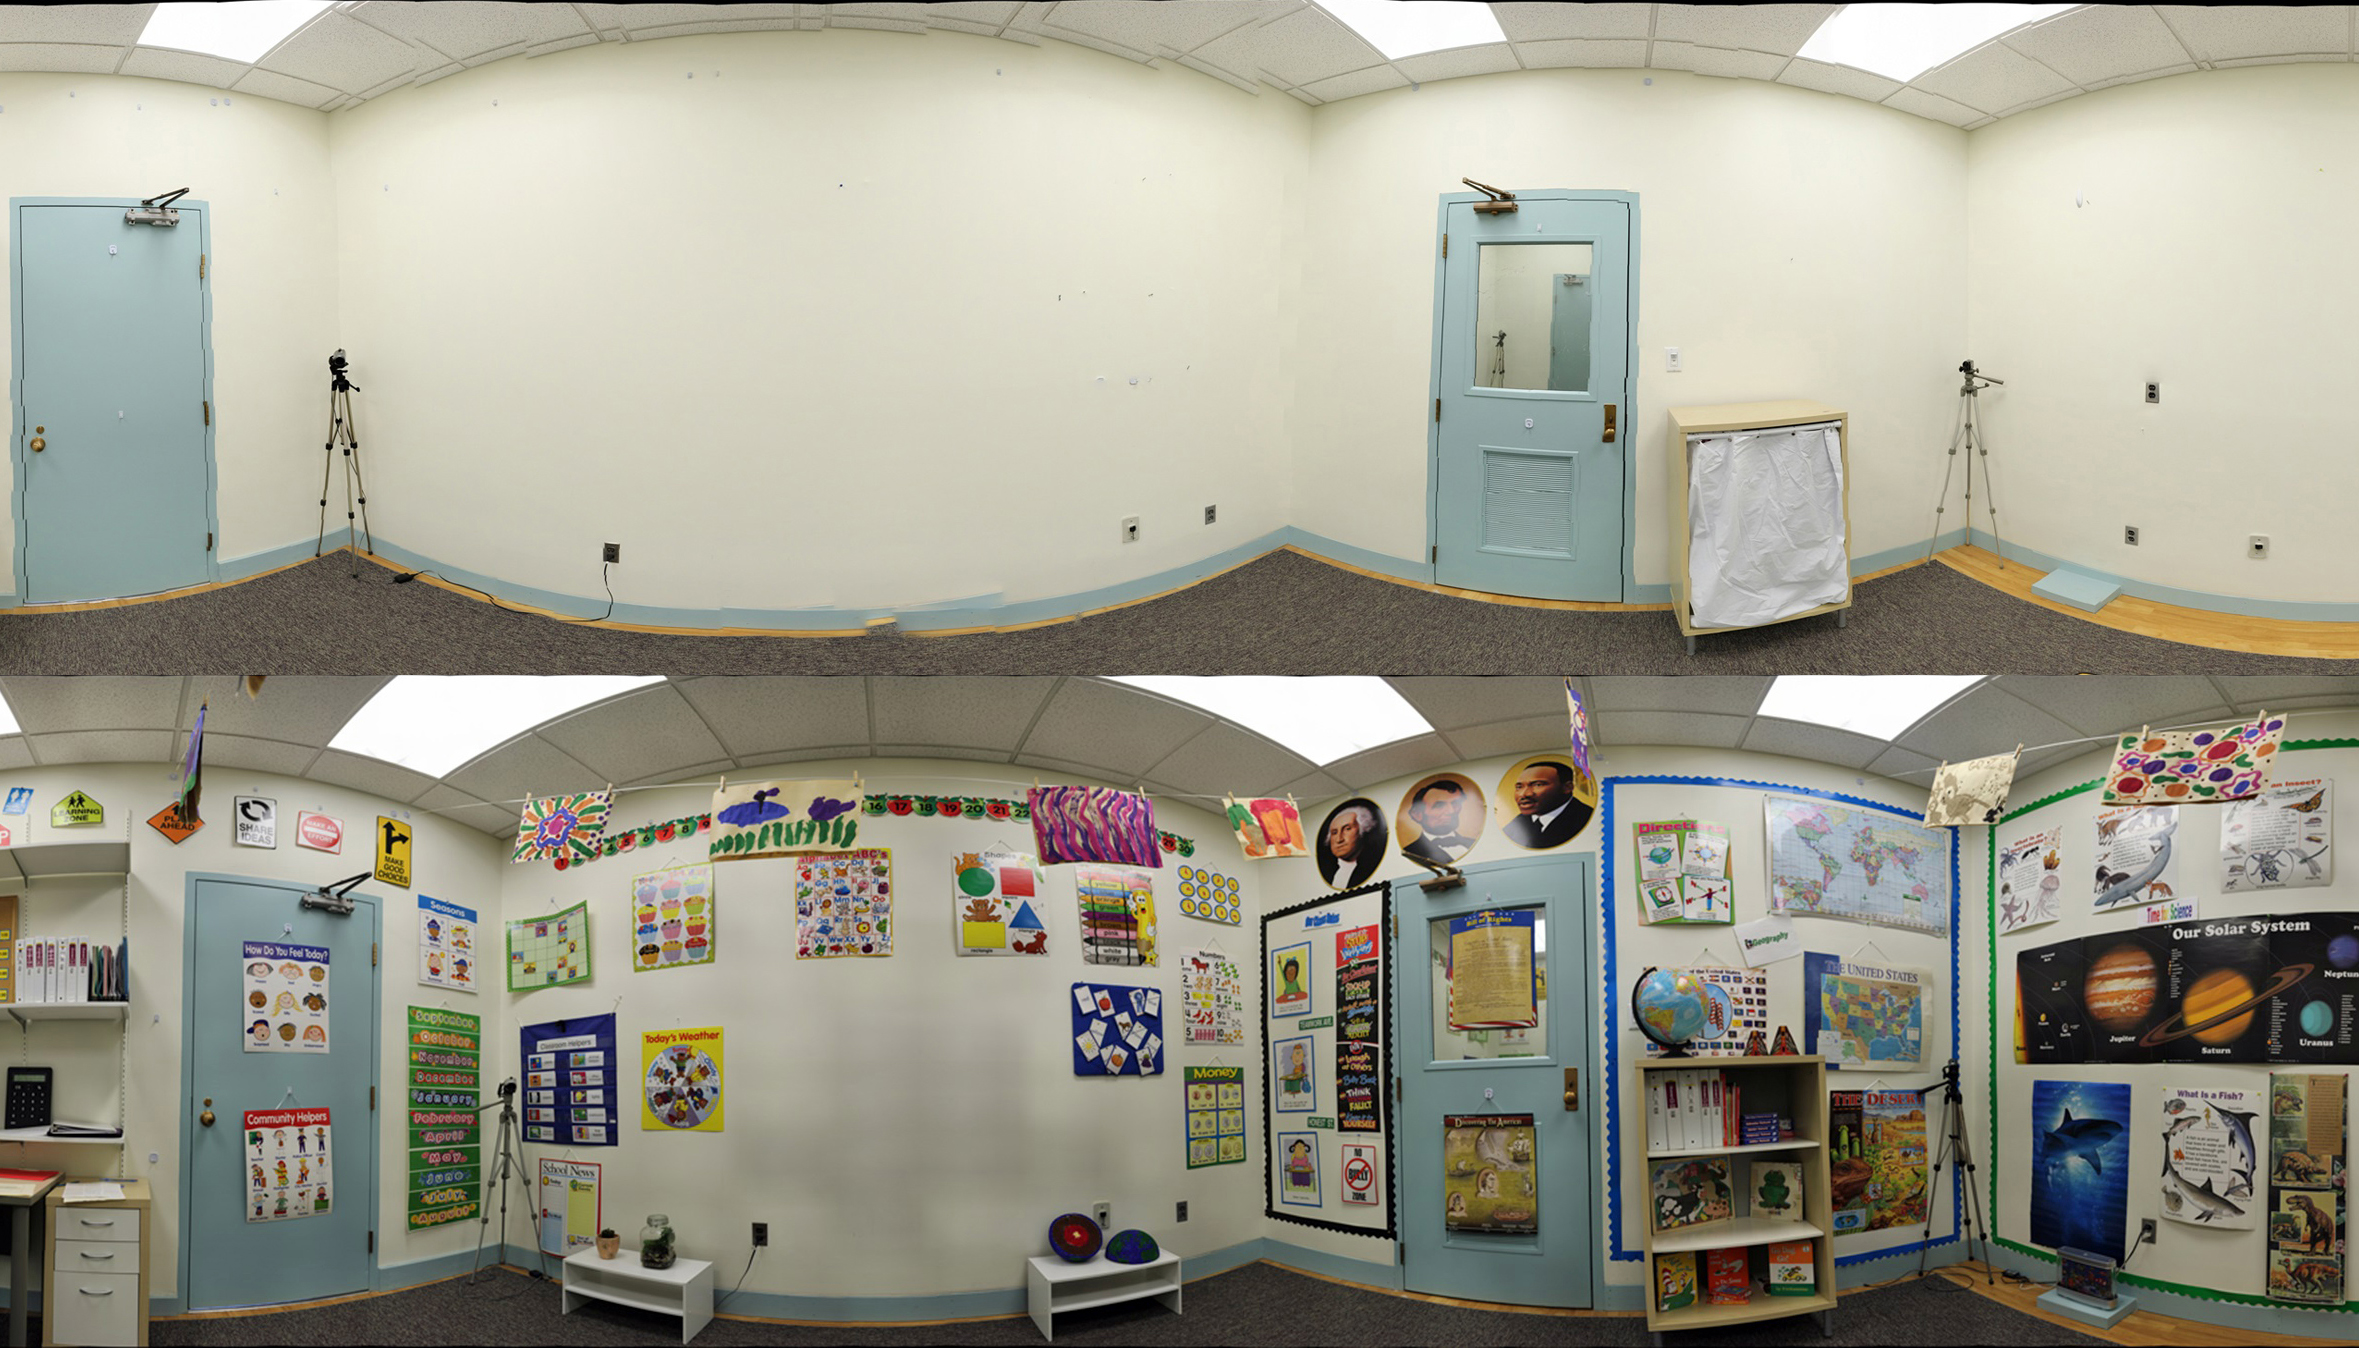 Classroom Decor Research ~ Press release heavily decorated classrooms disrupt